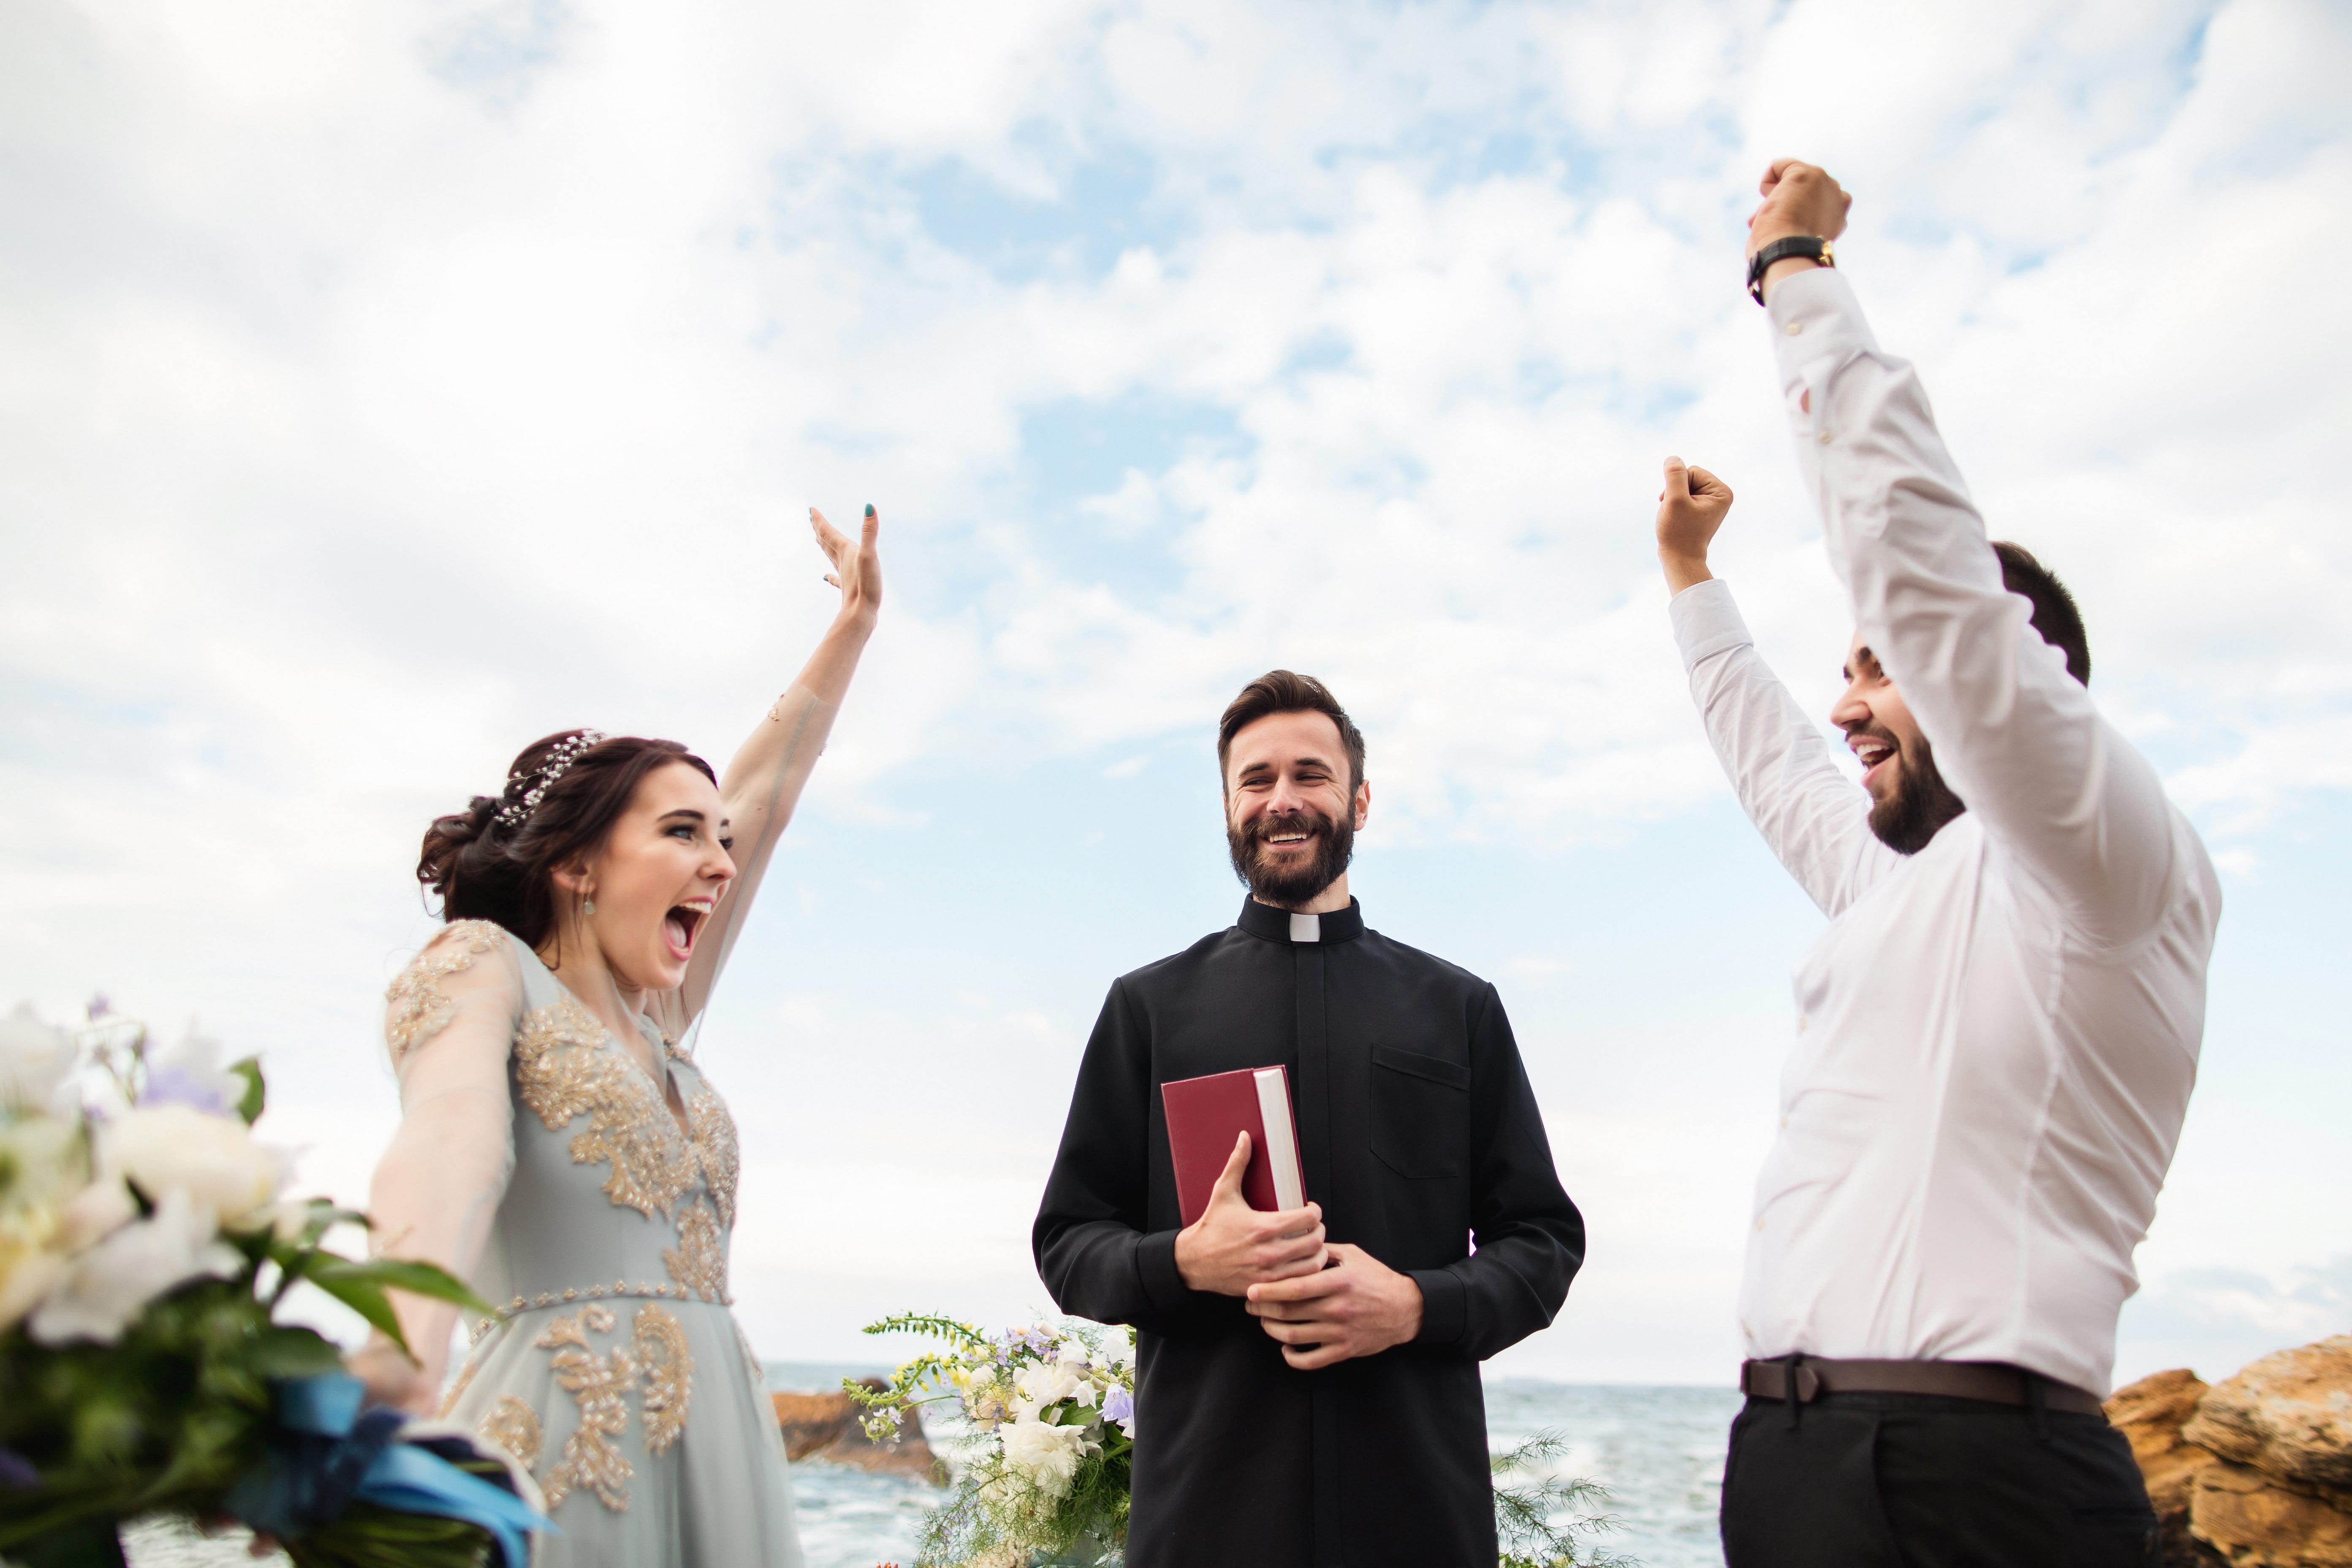 Ordained Minister officiating at a wedding